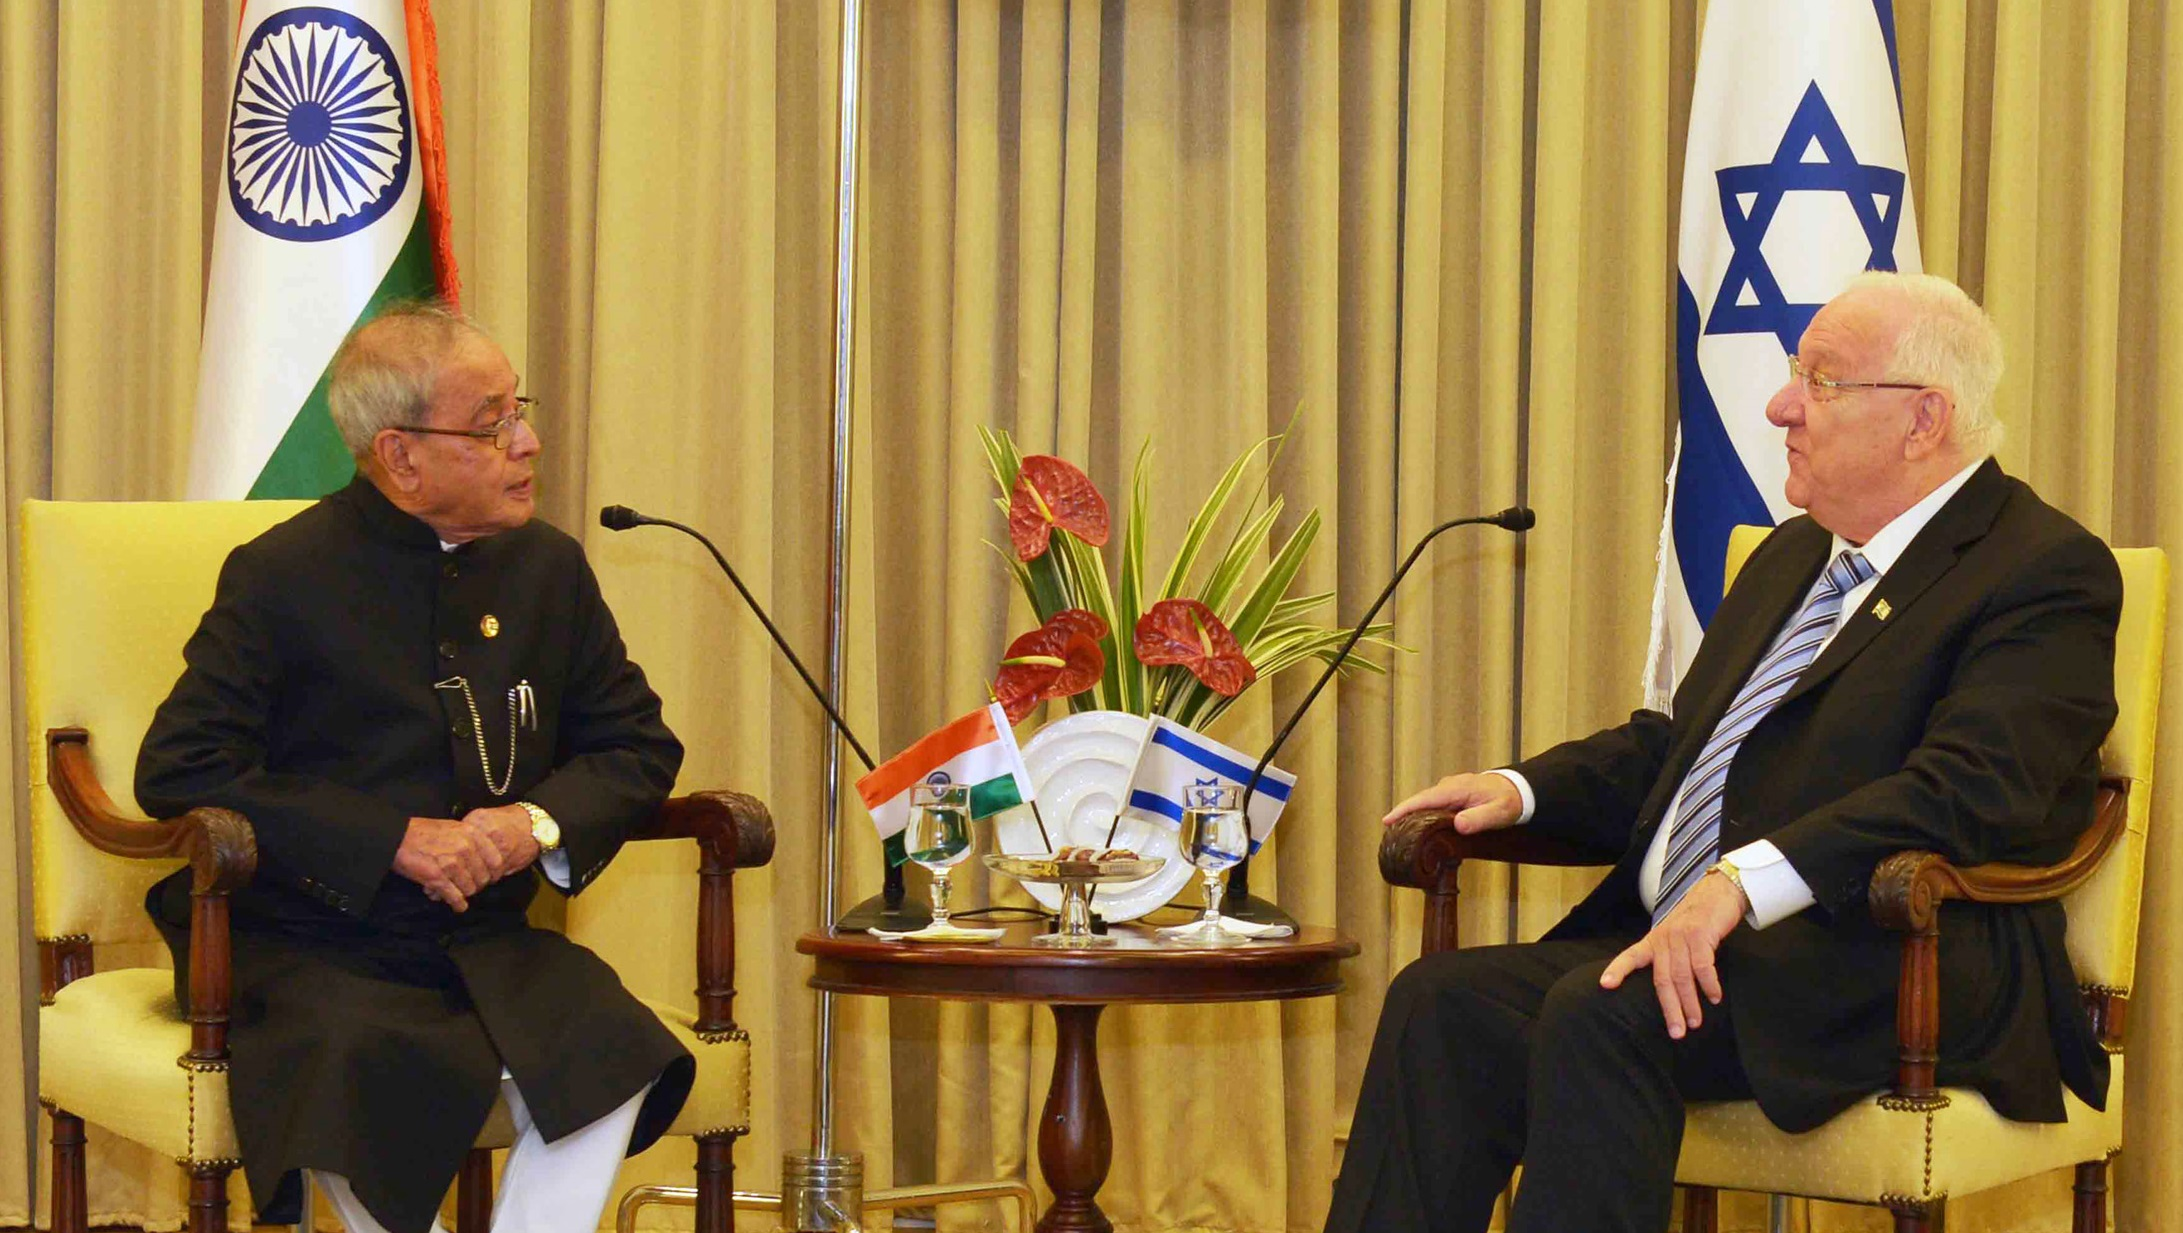 The President, Shri Pranab Mukherjee meeting the President of Israel, Mr. Reuven Rivlin, at President House, Jerusalem on October 14, 2015.